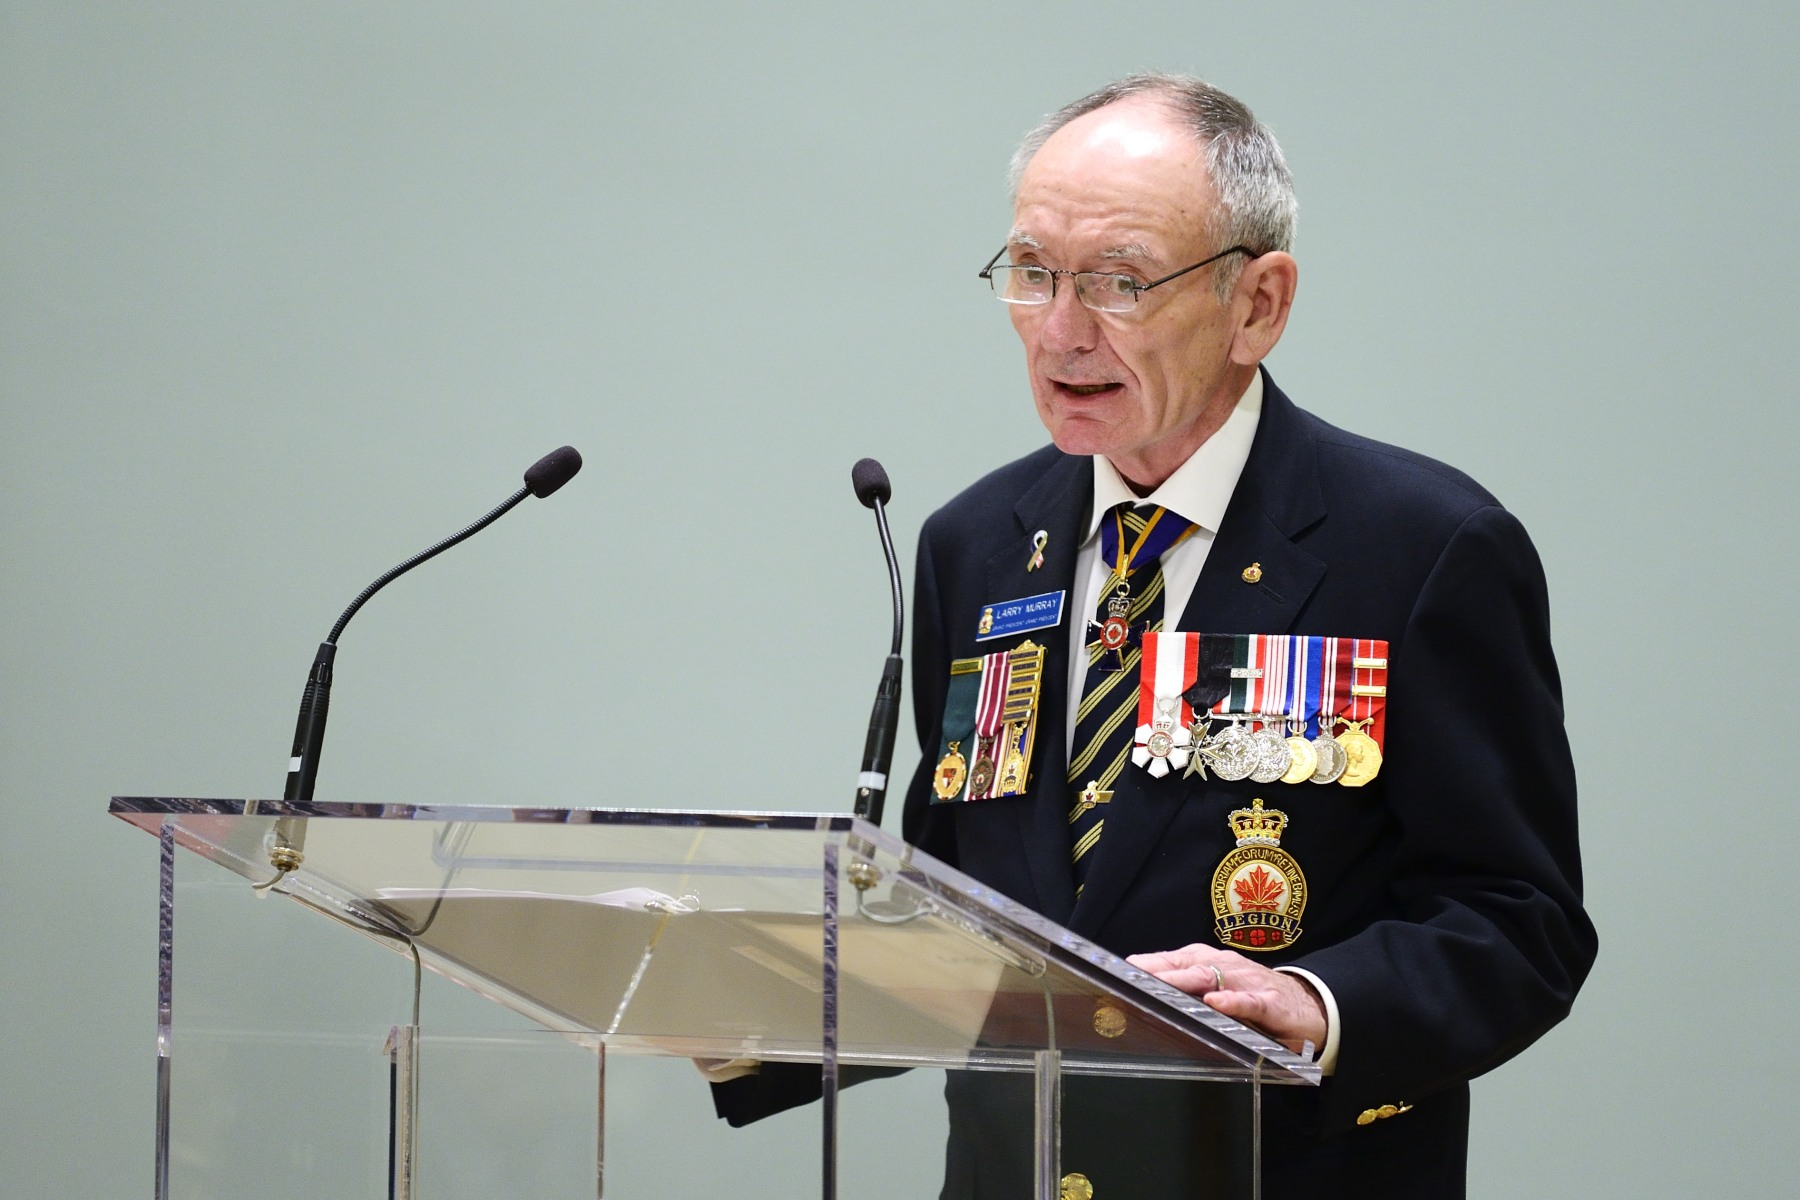 Larry Murray, Grand President of The Royal Canadian Legion, also delivered remarks.